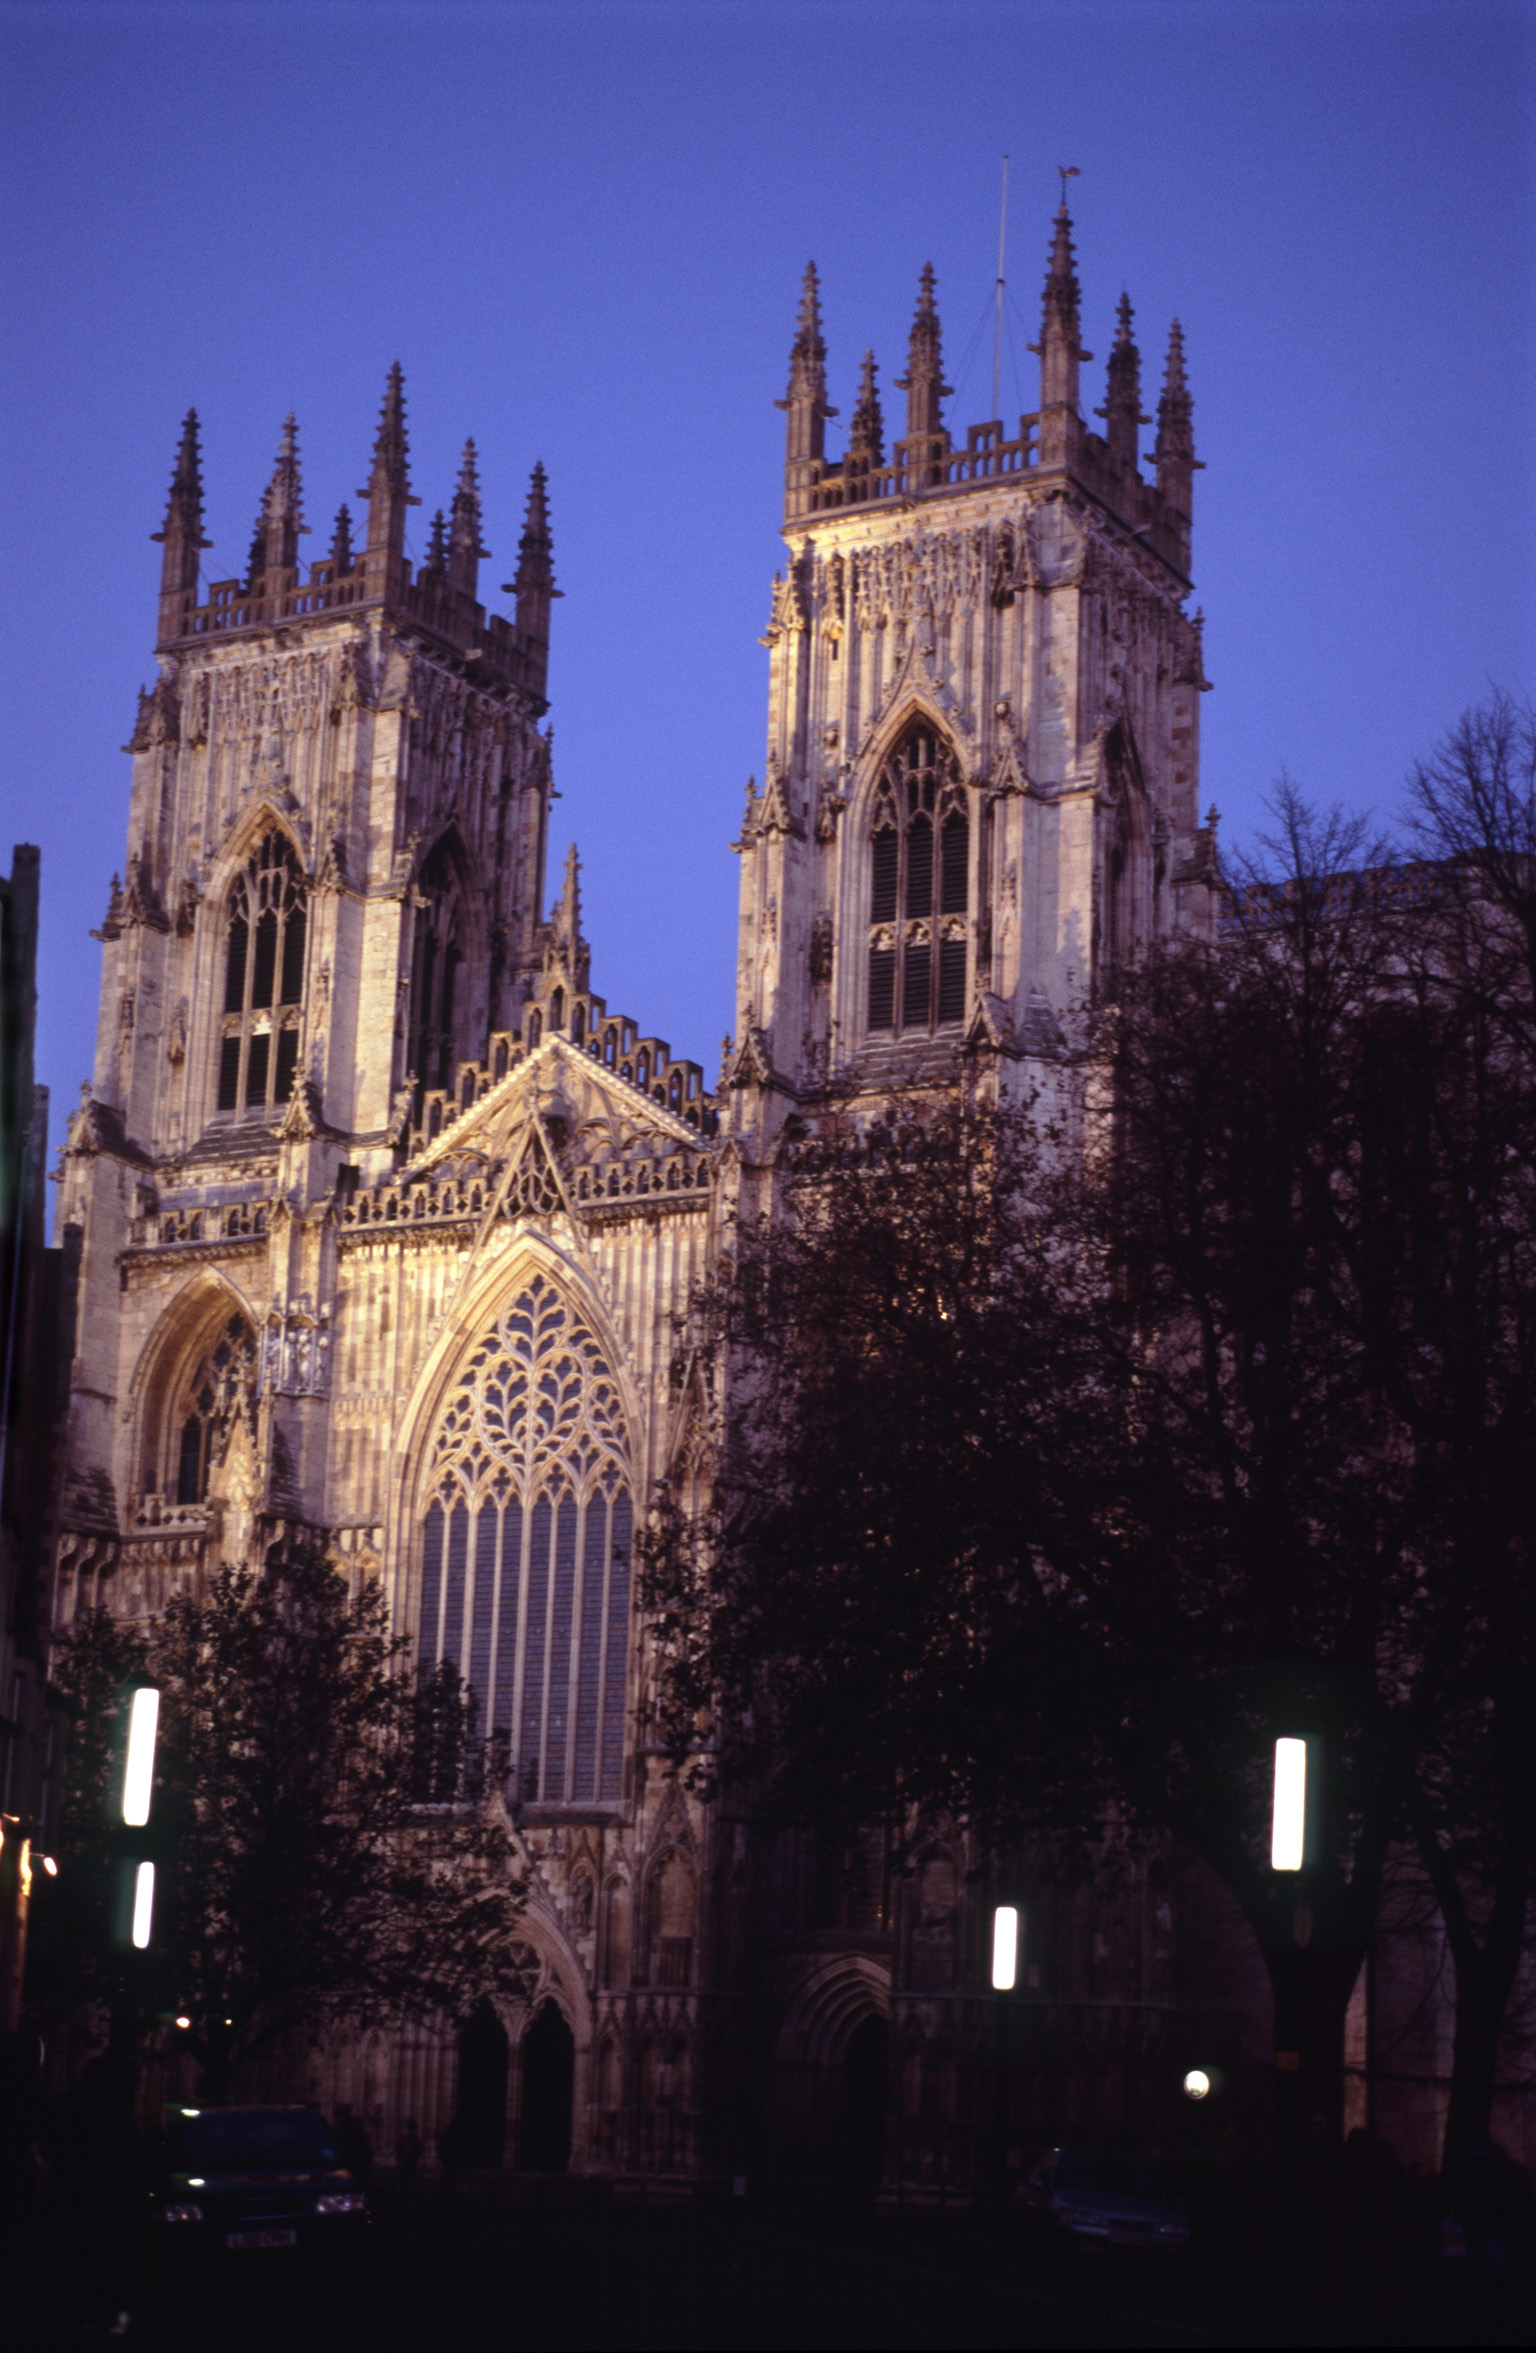 Exterior of Facade of Illuminated York Minster Cathedral in the Evening, York, England